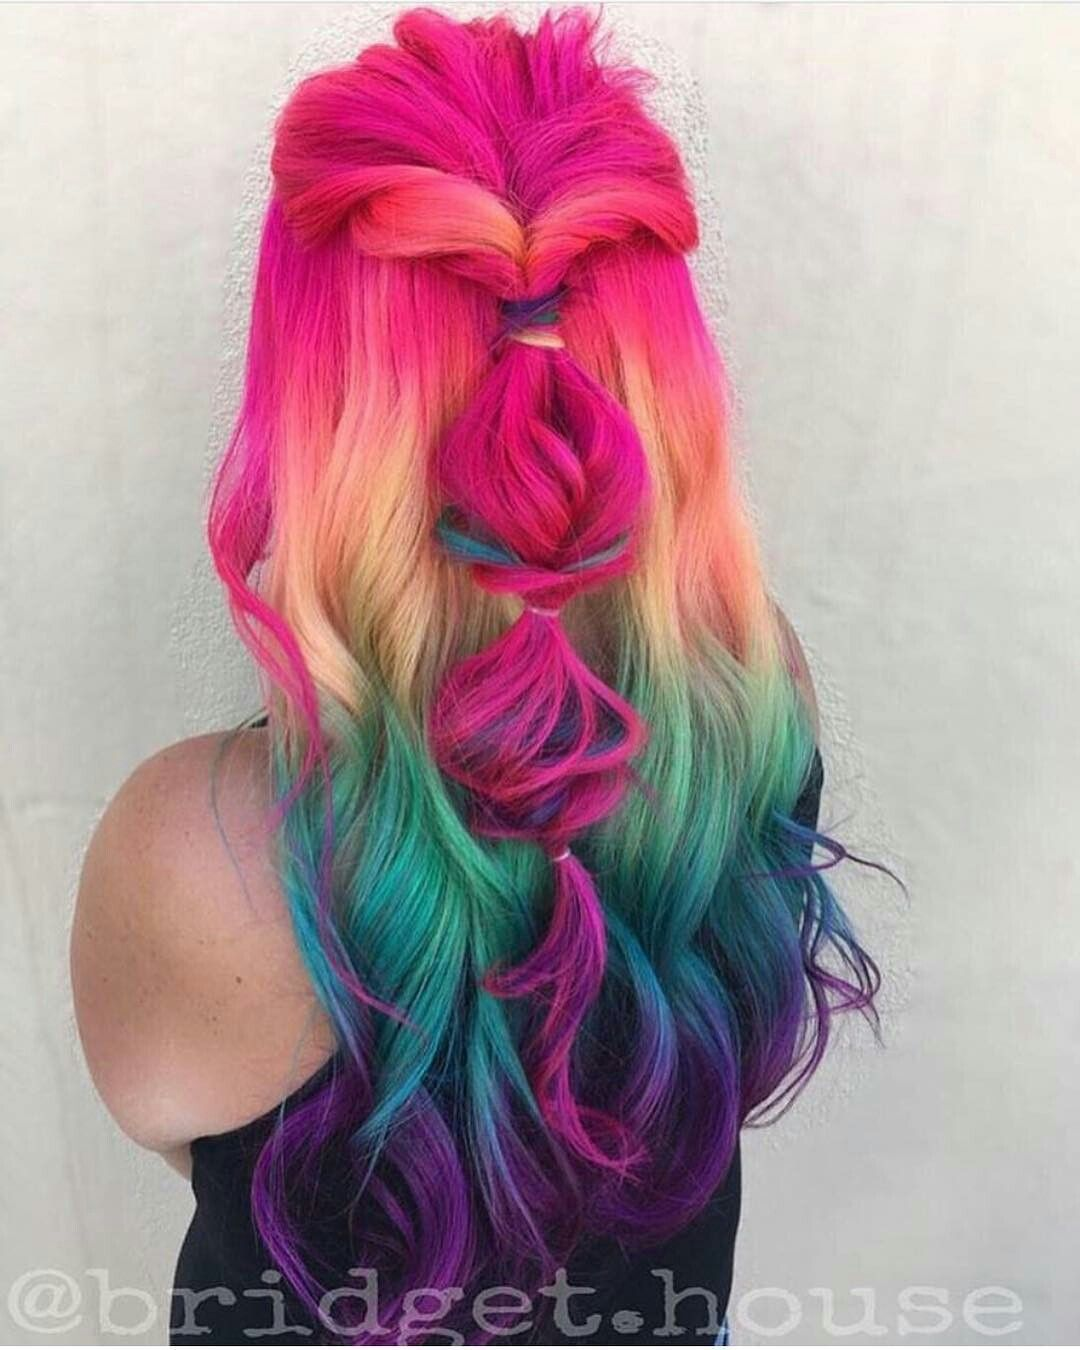 Pin By Amber Bradford On Dyed Hair Hair Styles Bright Hair Hair Color Crazy